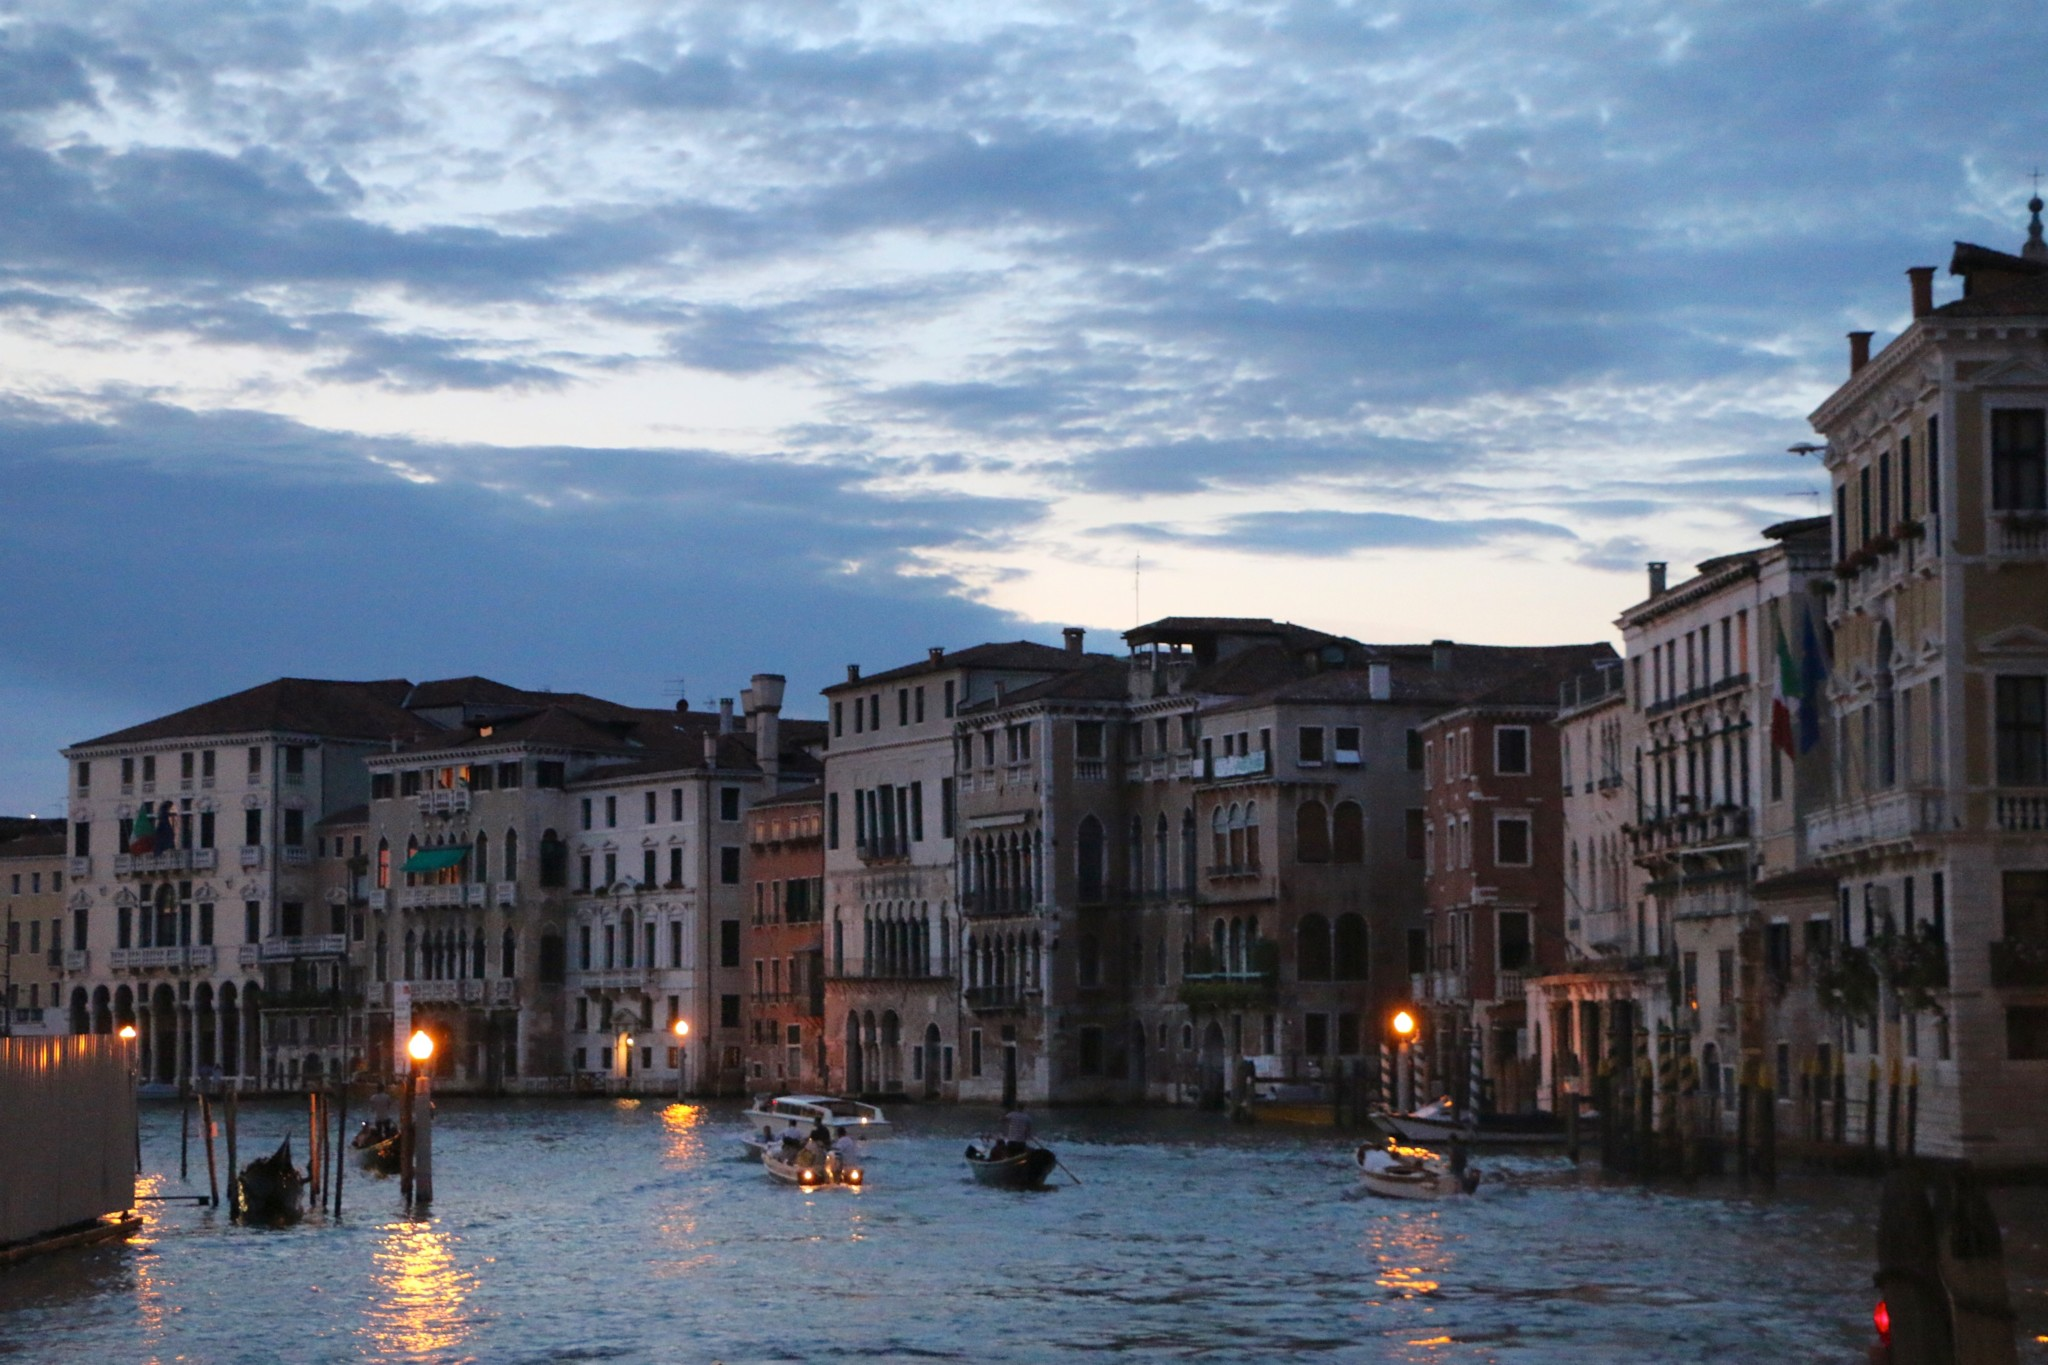 Our Romantic Italian Date Night │Venice at Night